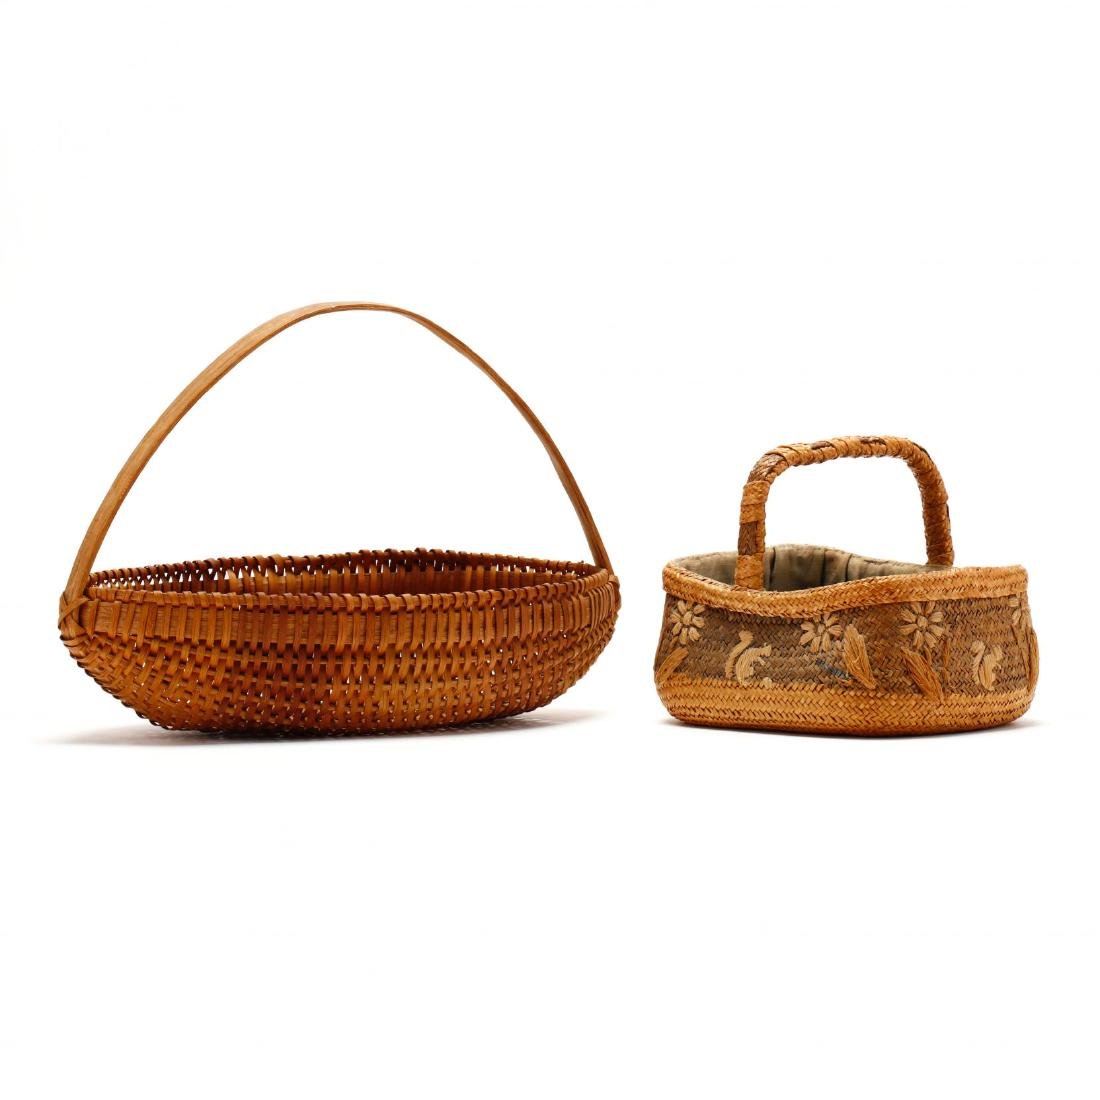 Two Vintage Native American Baskets